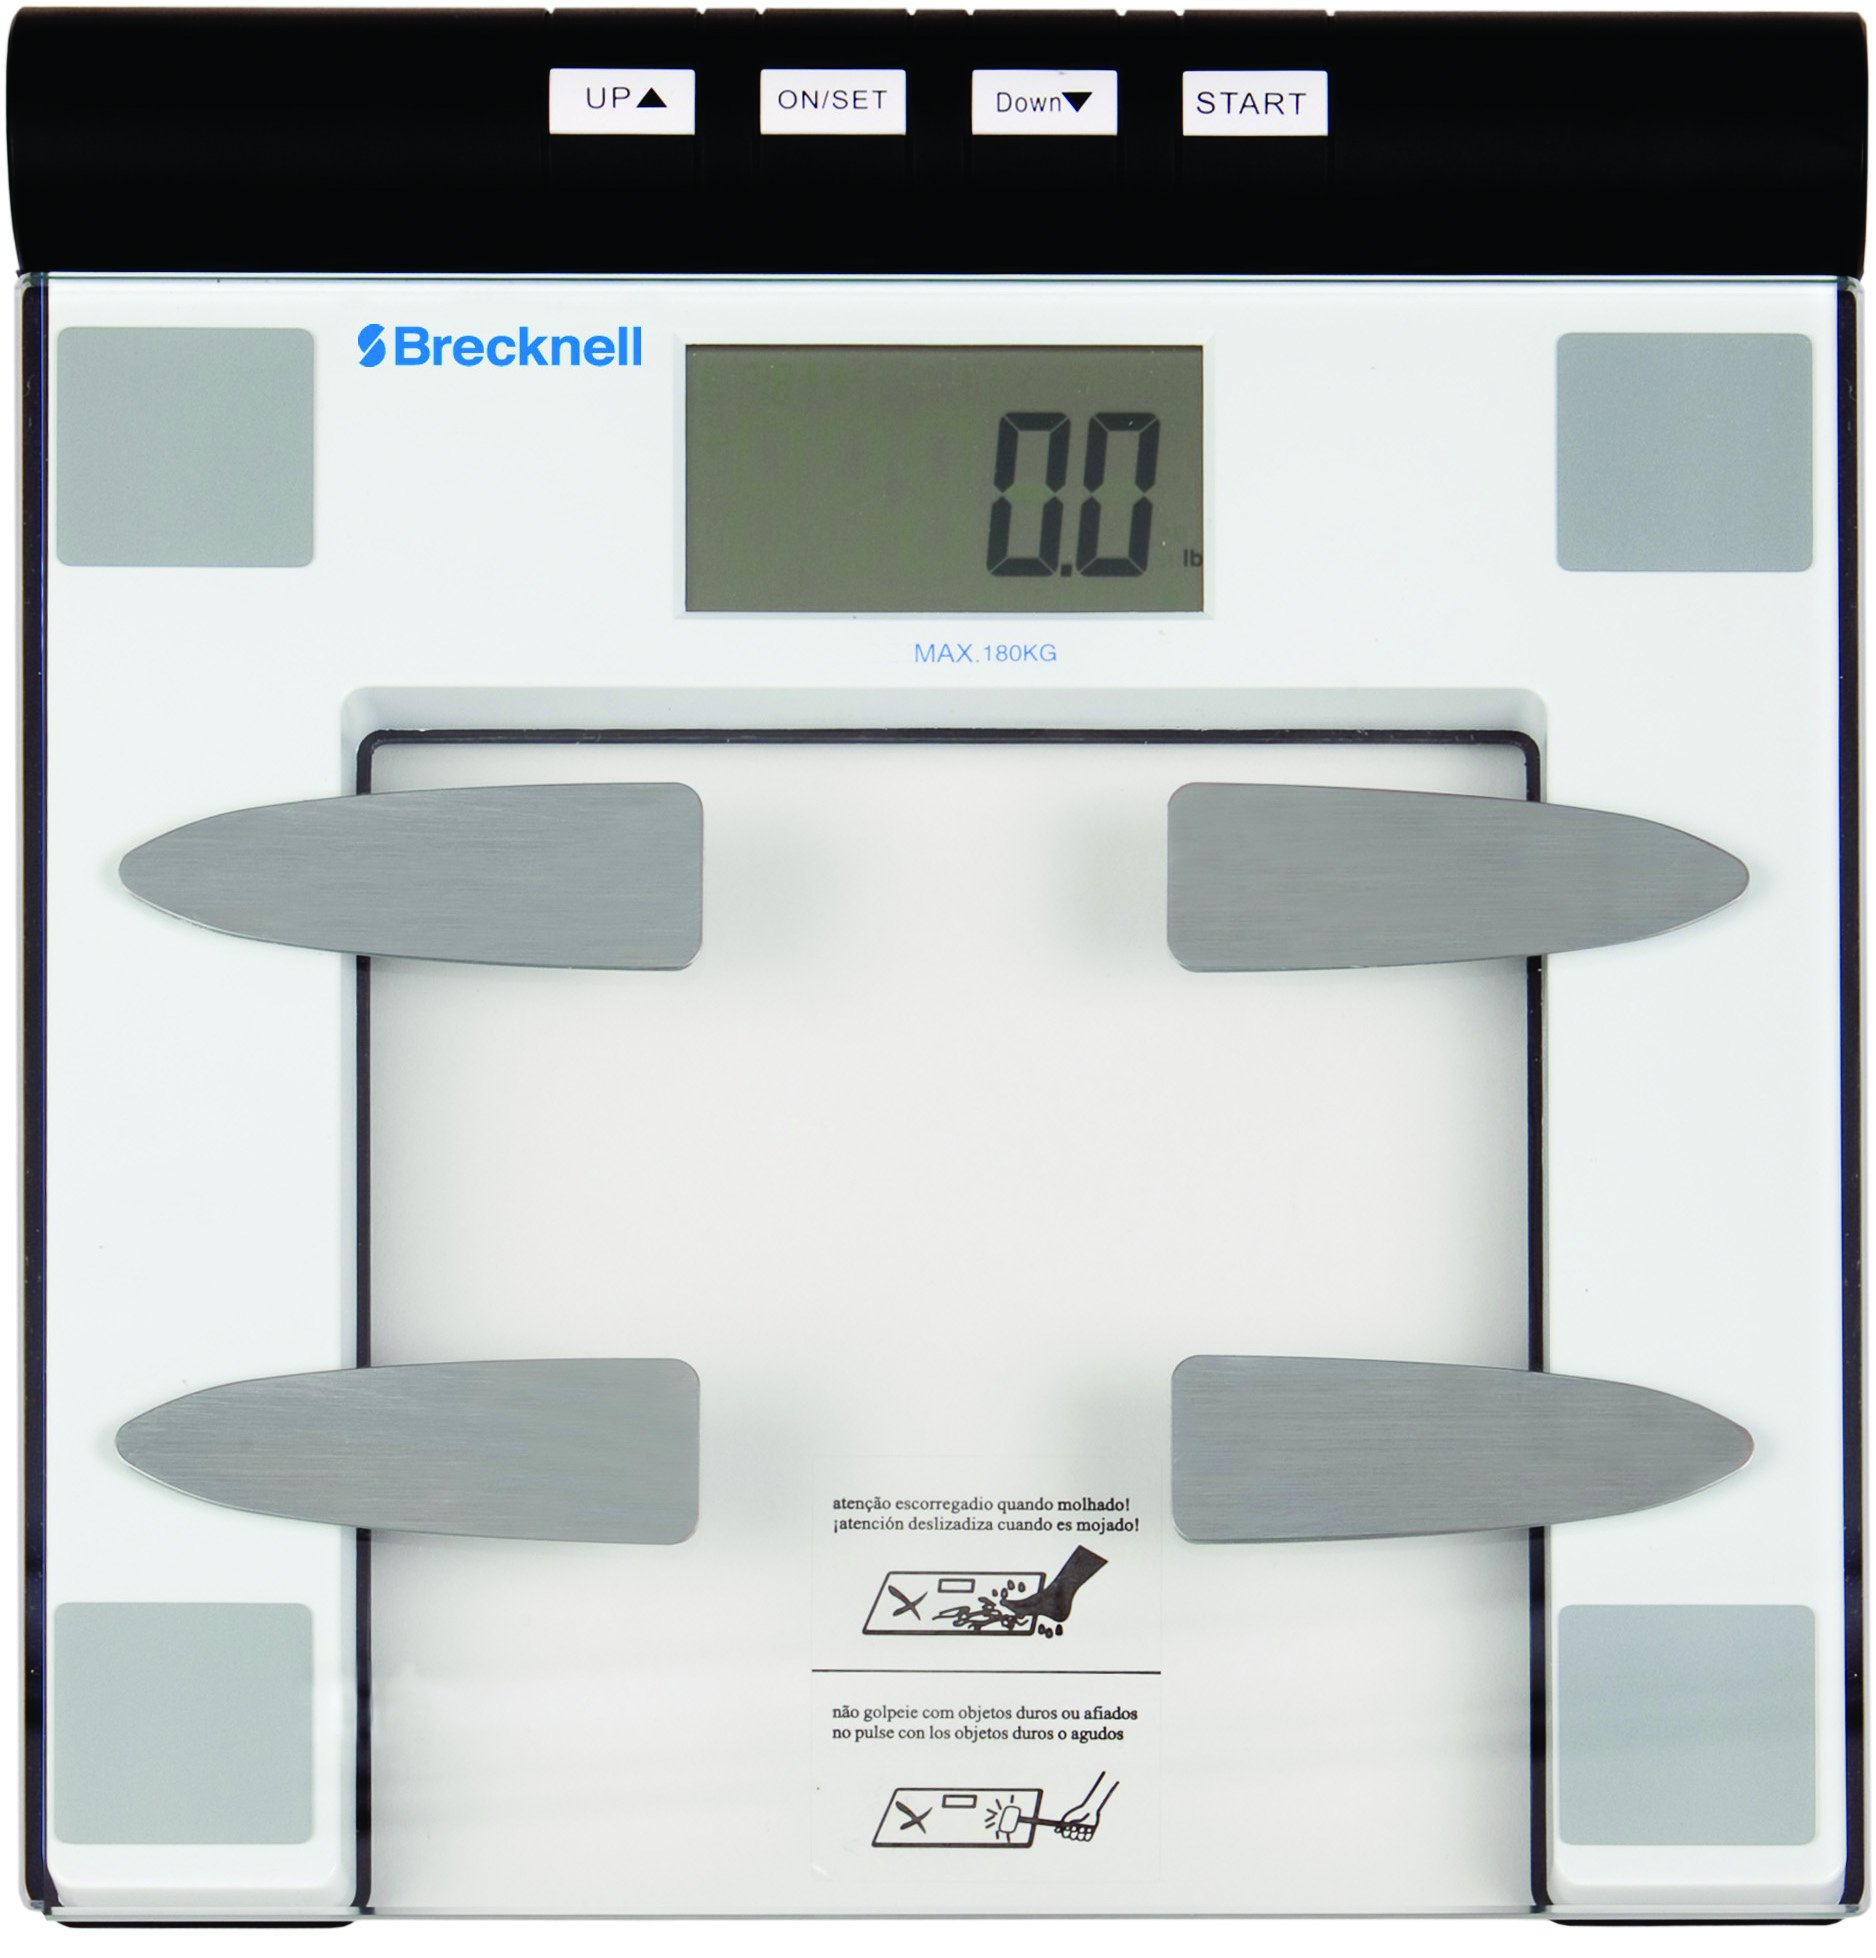 Brecknell BFS-150 Digital Body Fat Bathroom Scale, 396 lb. Capacity, 12 User Memory, Easy to Clean Top, Large LCD, Glass Top